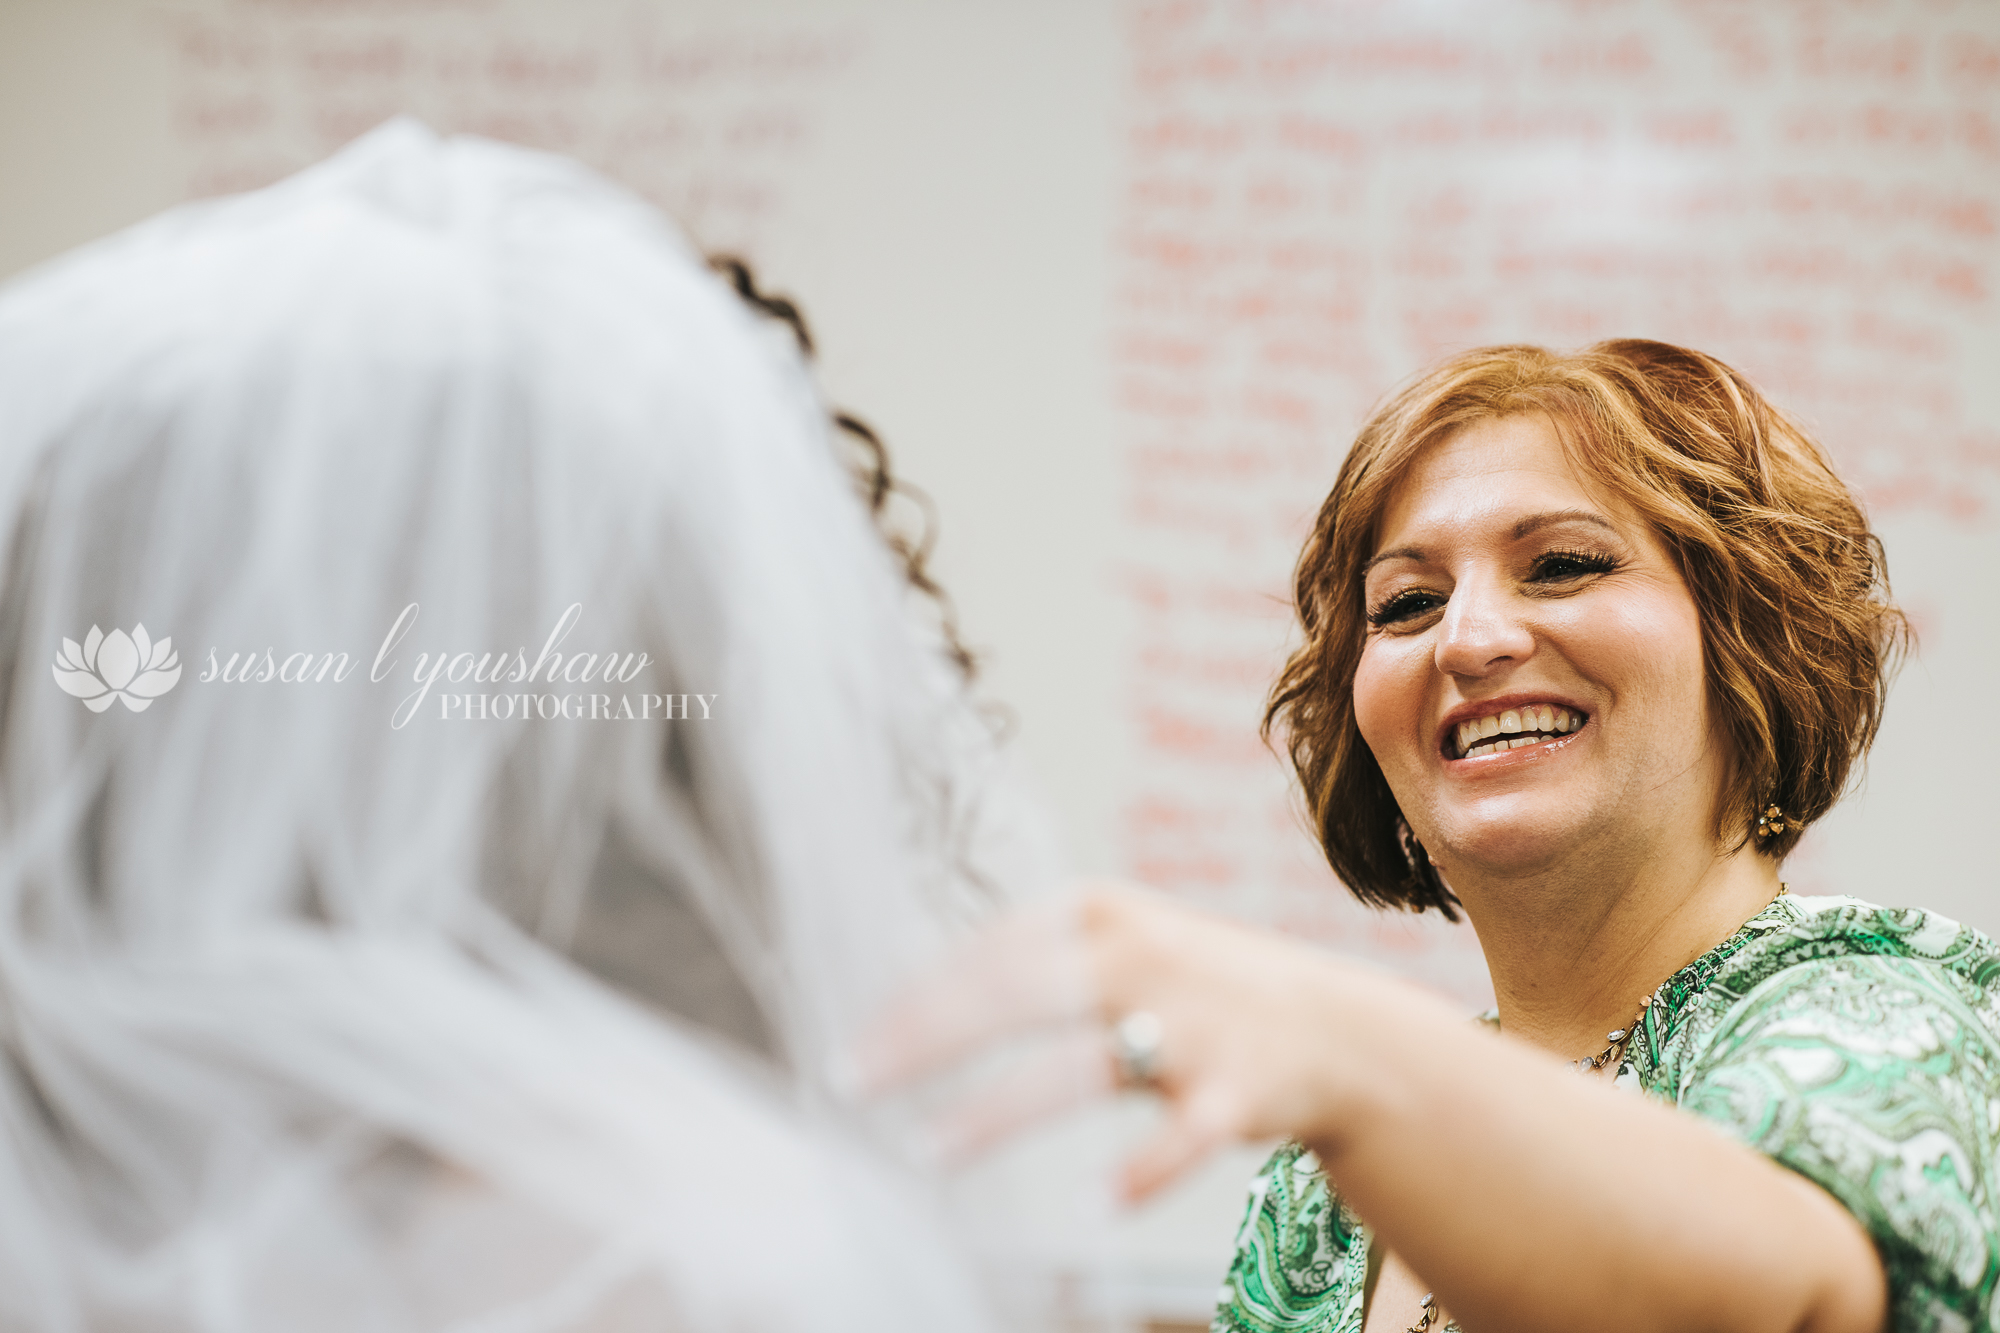 Katelyn and Wes Wedding Photos 07-13-2019 SLY Photography-8.jpg